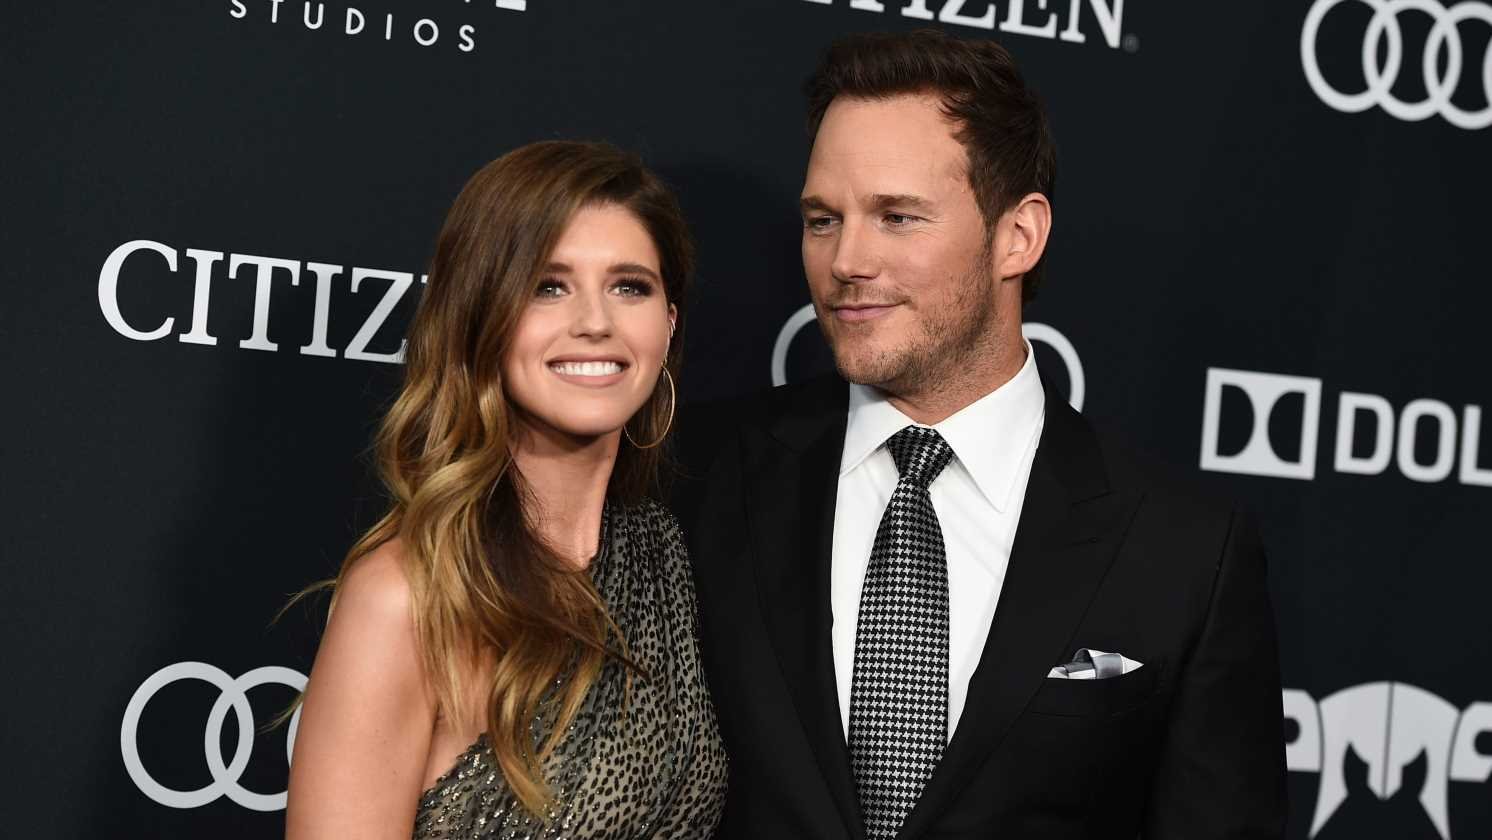 Maria Shriver talks about watching daughter Katherine Schwarzenegger marry Chris Pratt